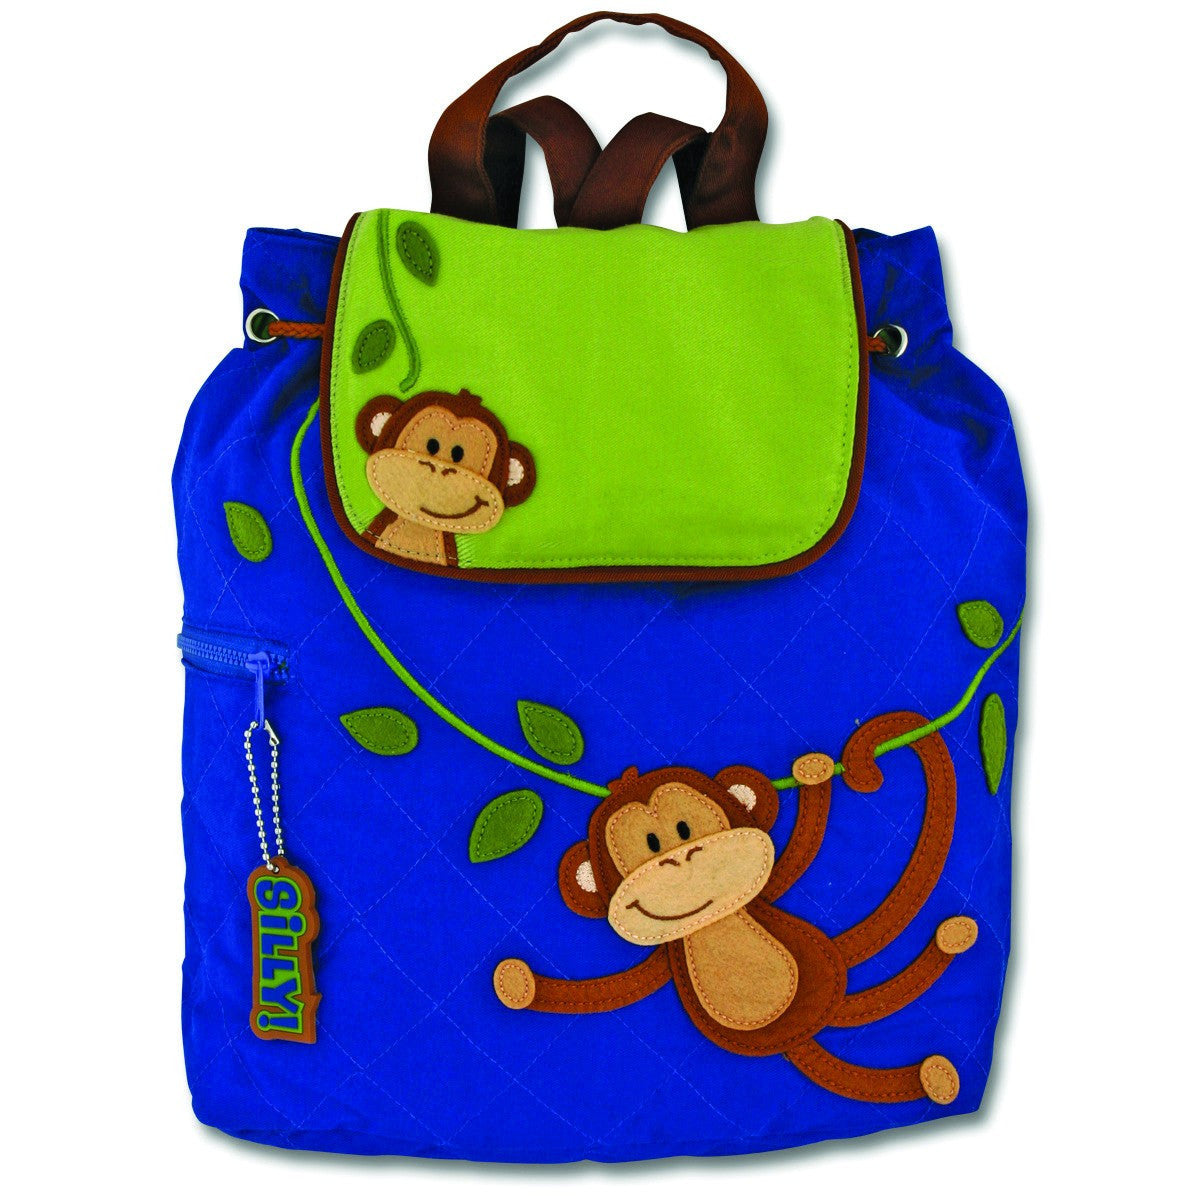 Stephen Joseph Children's Backpack - Monkey